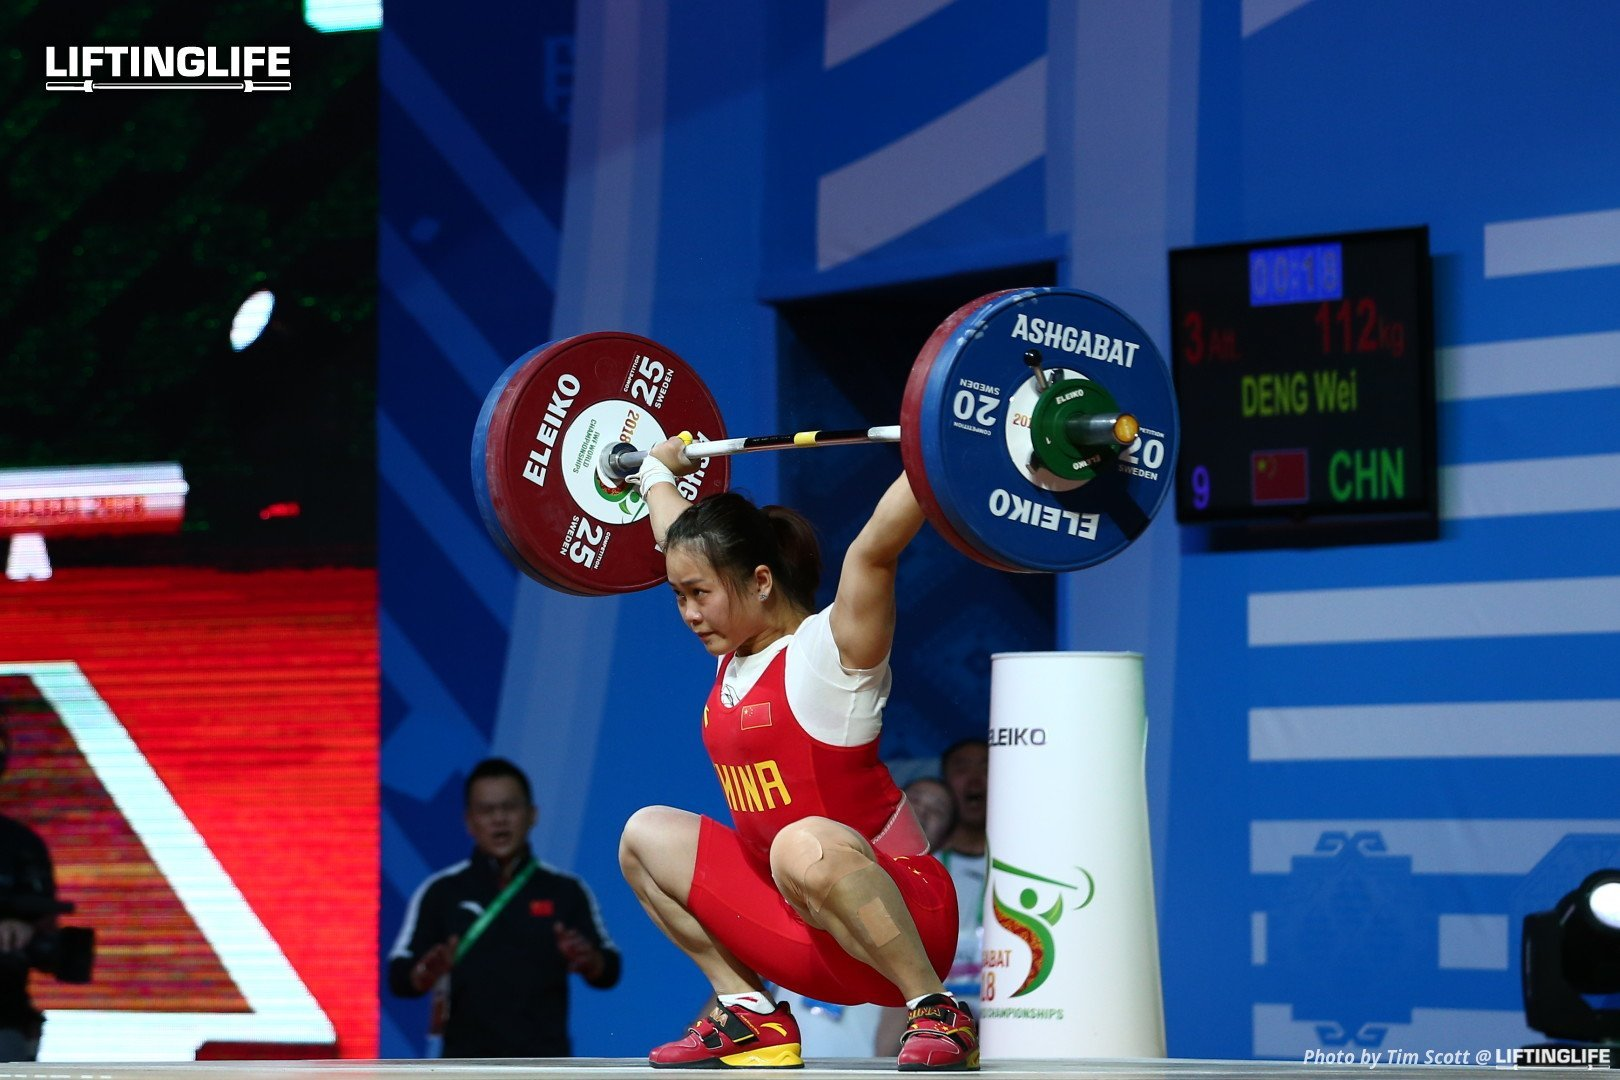 Chinese weightlifter Deng Wei snatching 112 kg at the 2018 Weightlifting World Championships